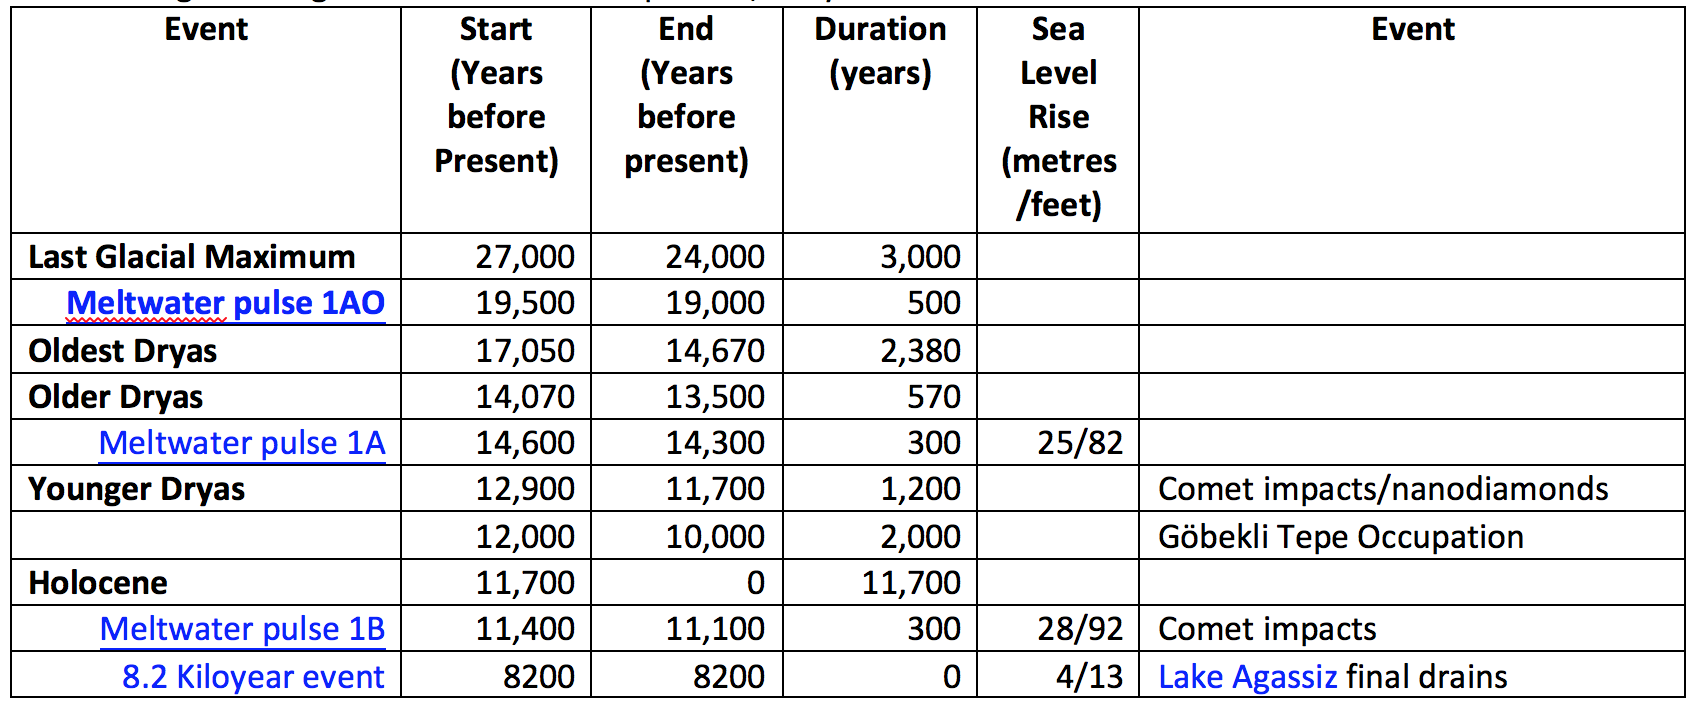 Table 1. Significant global events over the past 27,000 years